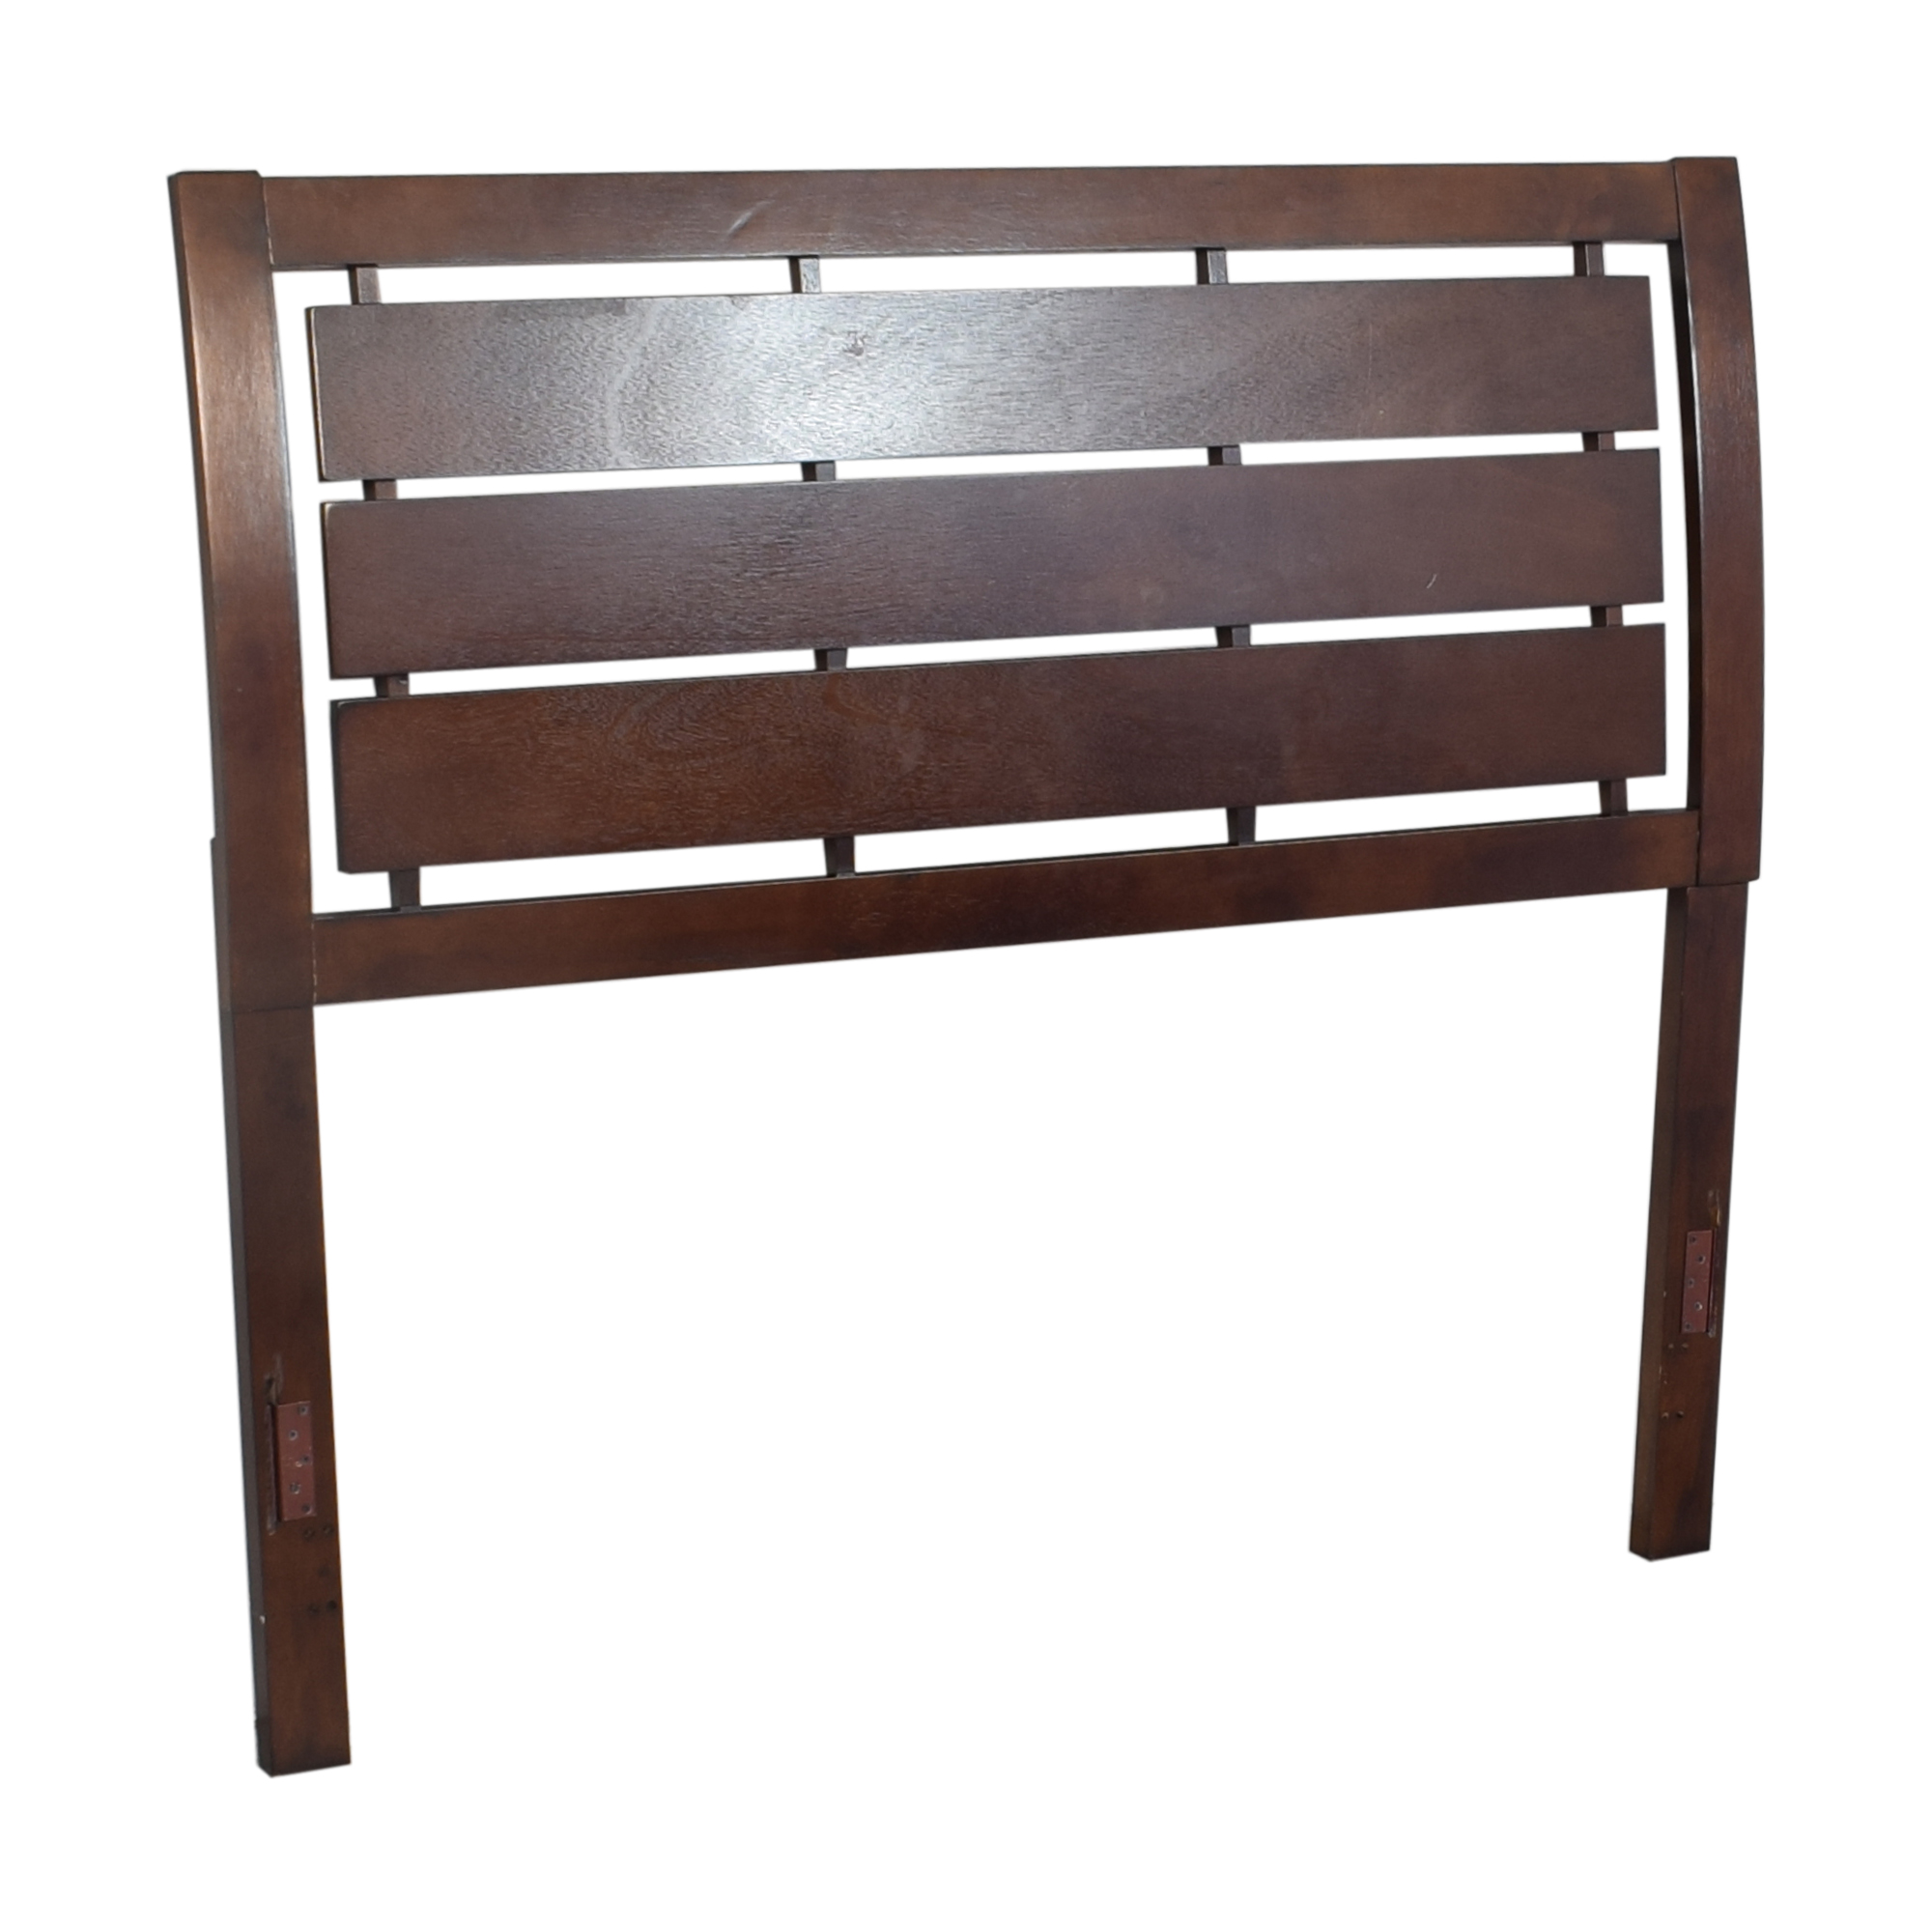 Wayfair Wayfair Full Slat Headboard dark brown